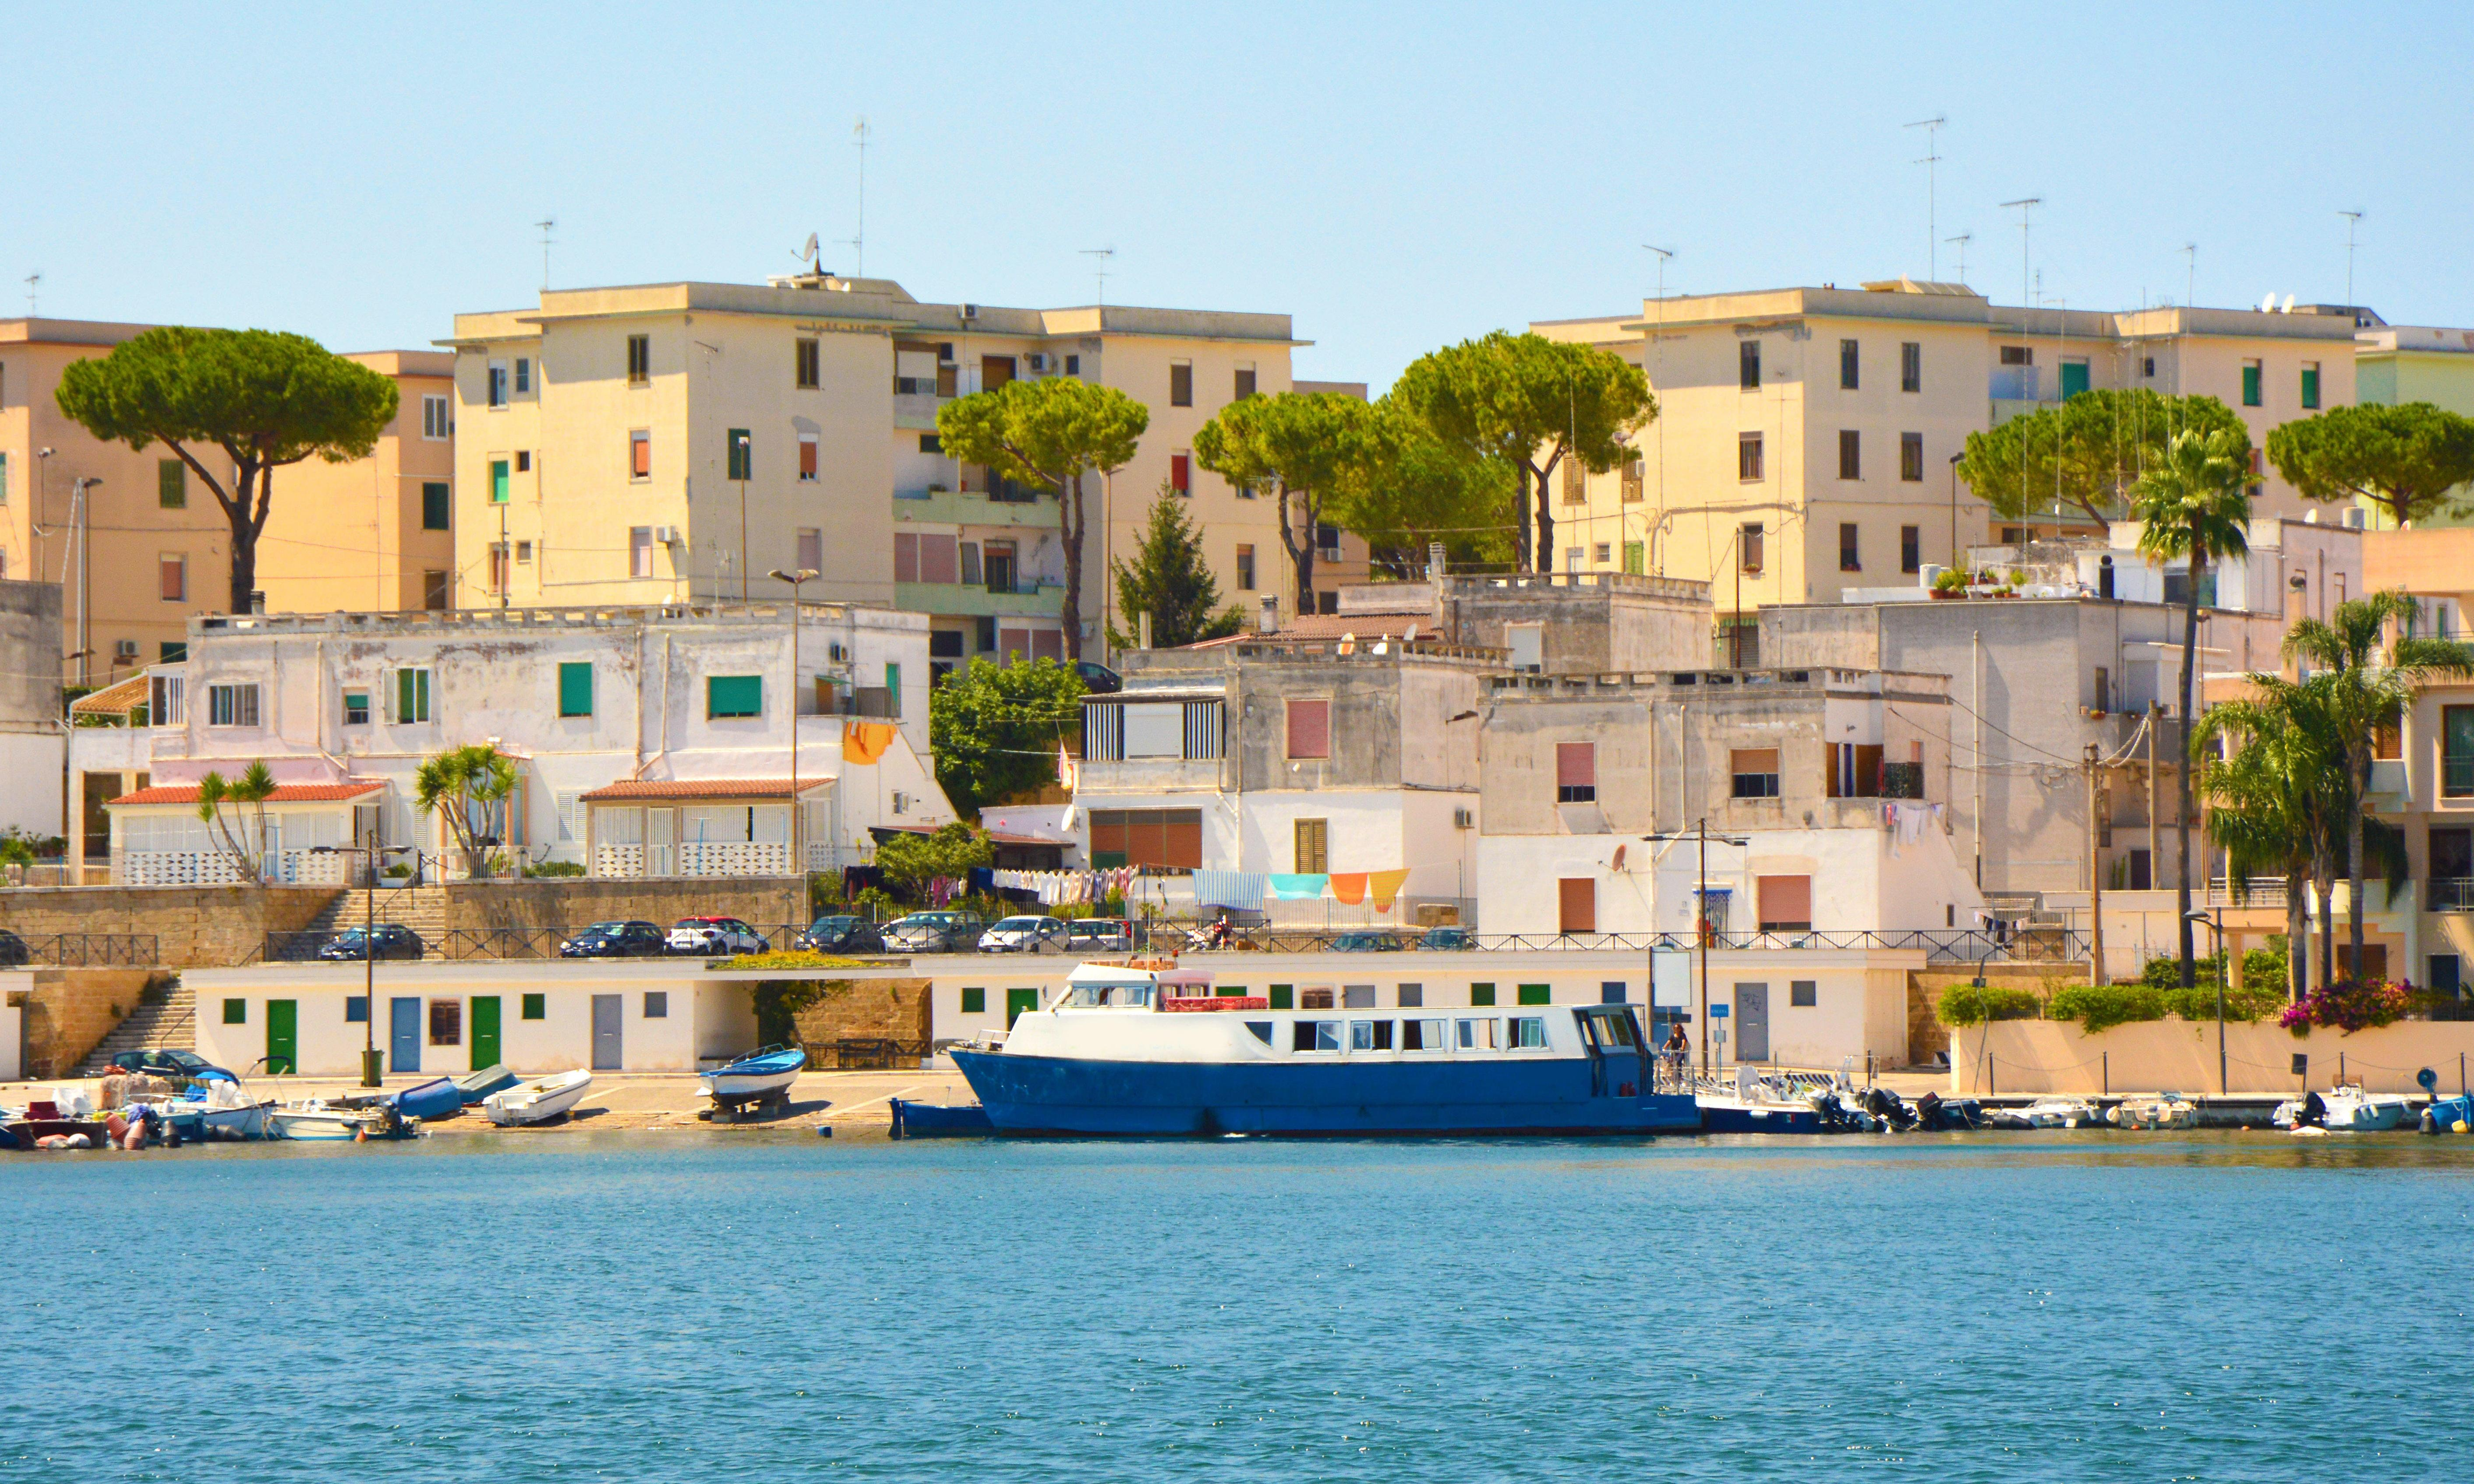 Italy: more than 50,000 evacuated in Brindisi after WW2 bomb found